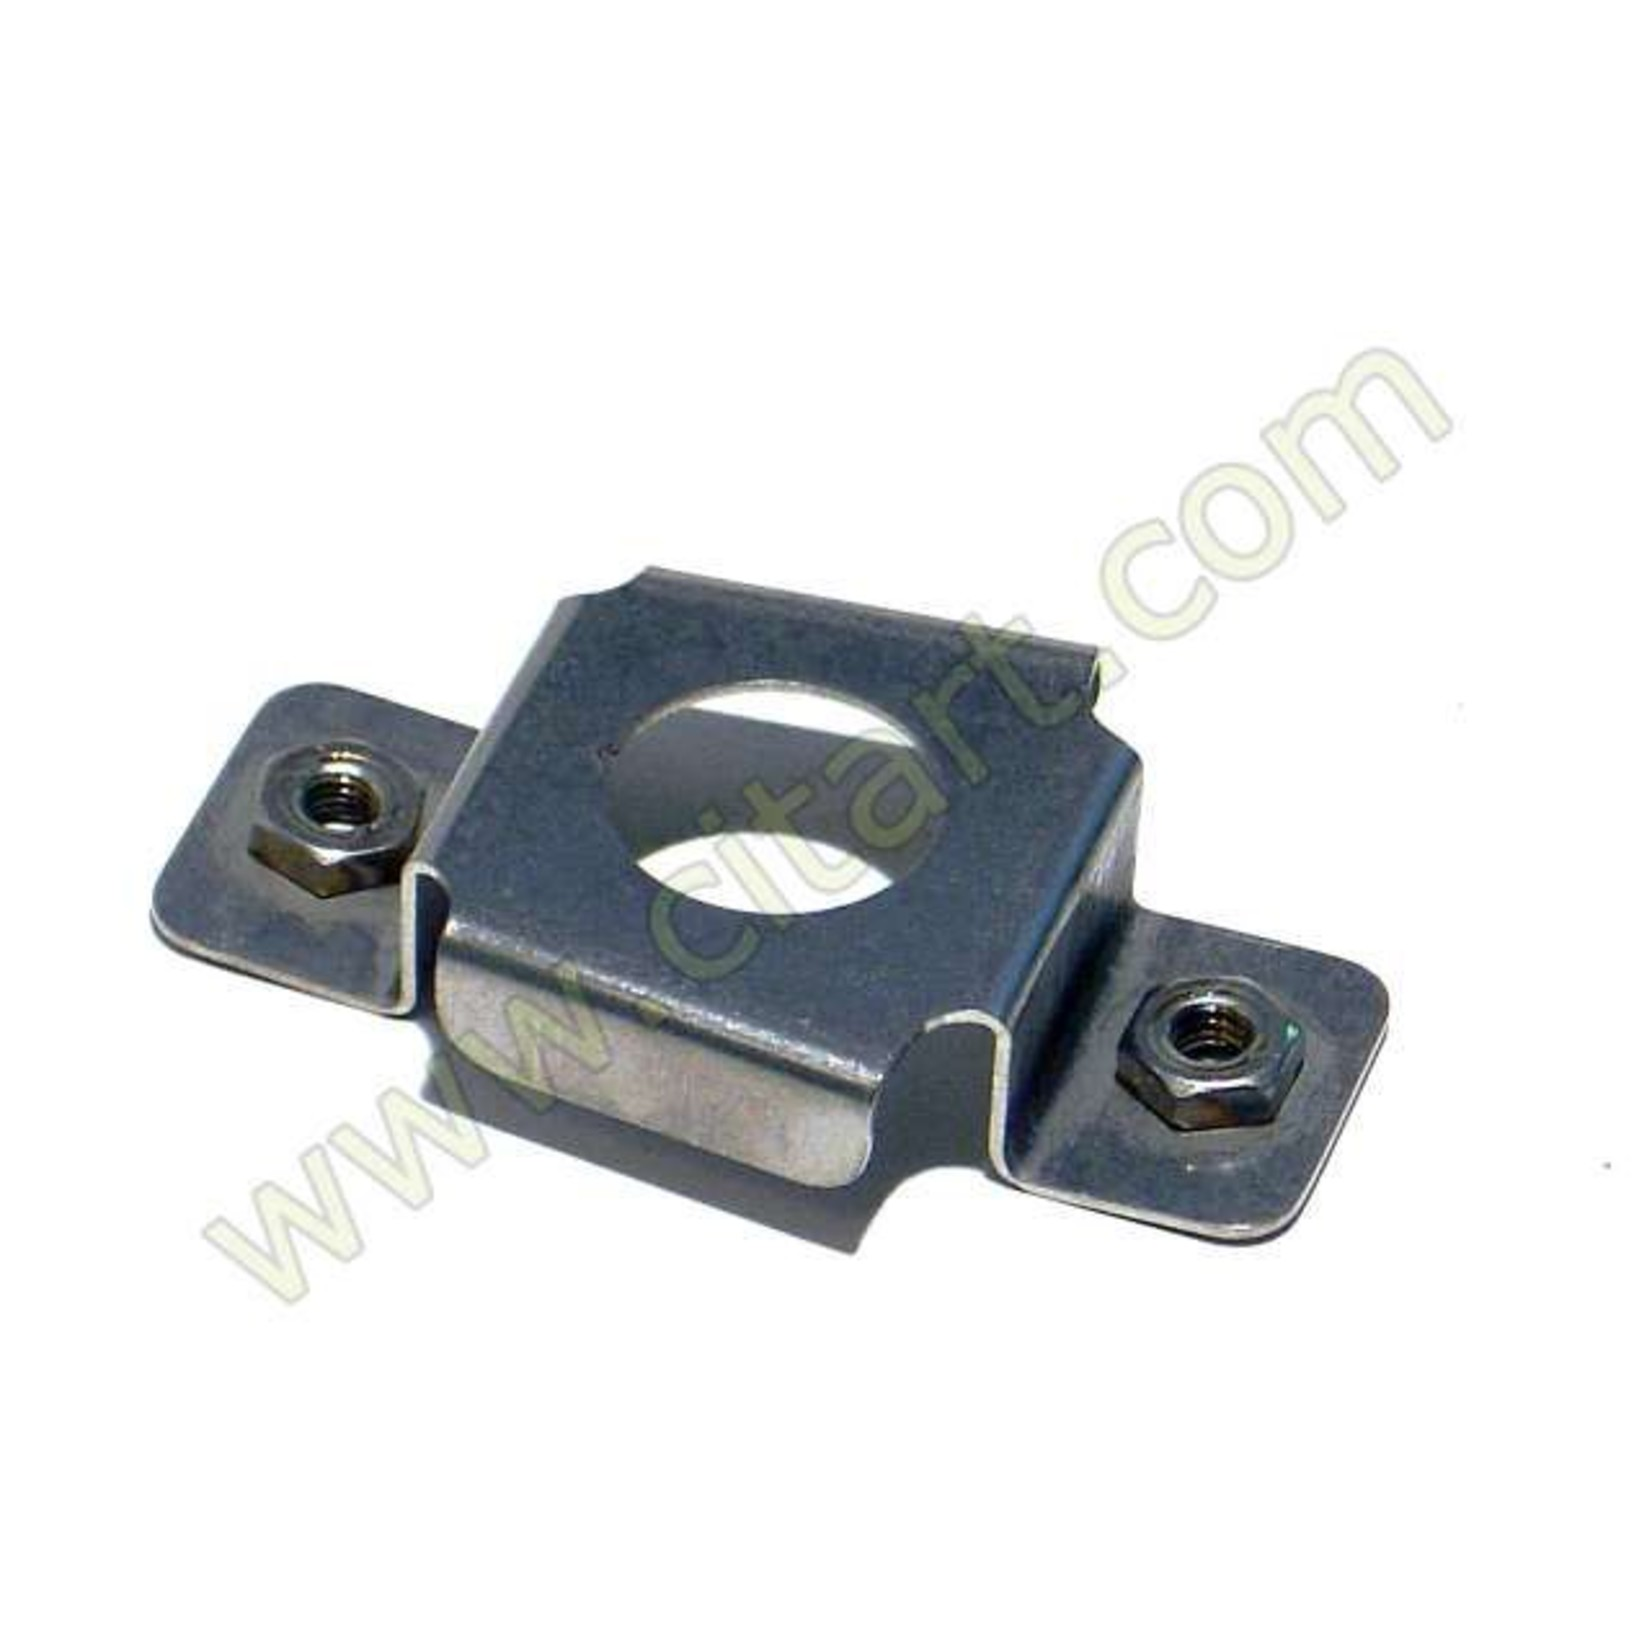 Bracket centring rear wing trapezium Stainless steel Nr Org: DX851225A